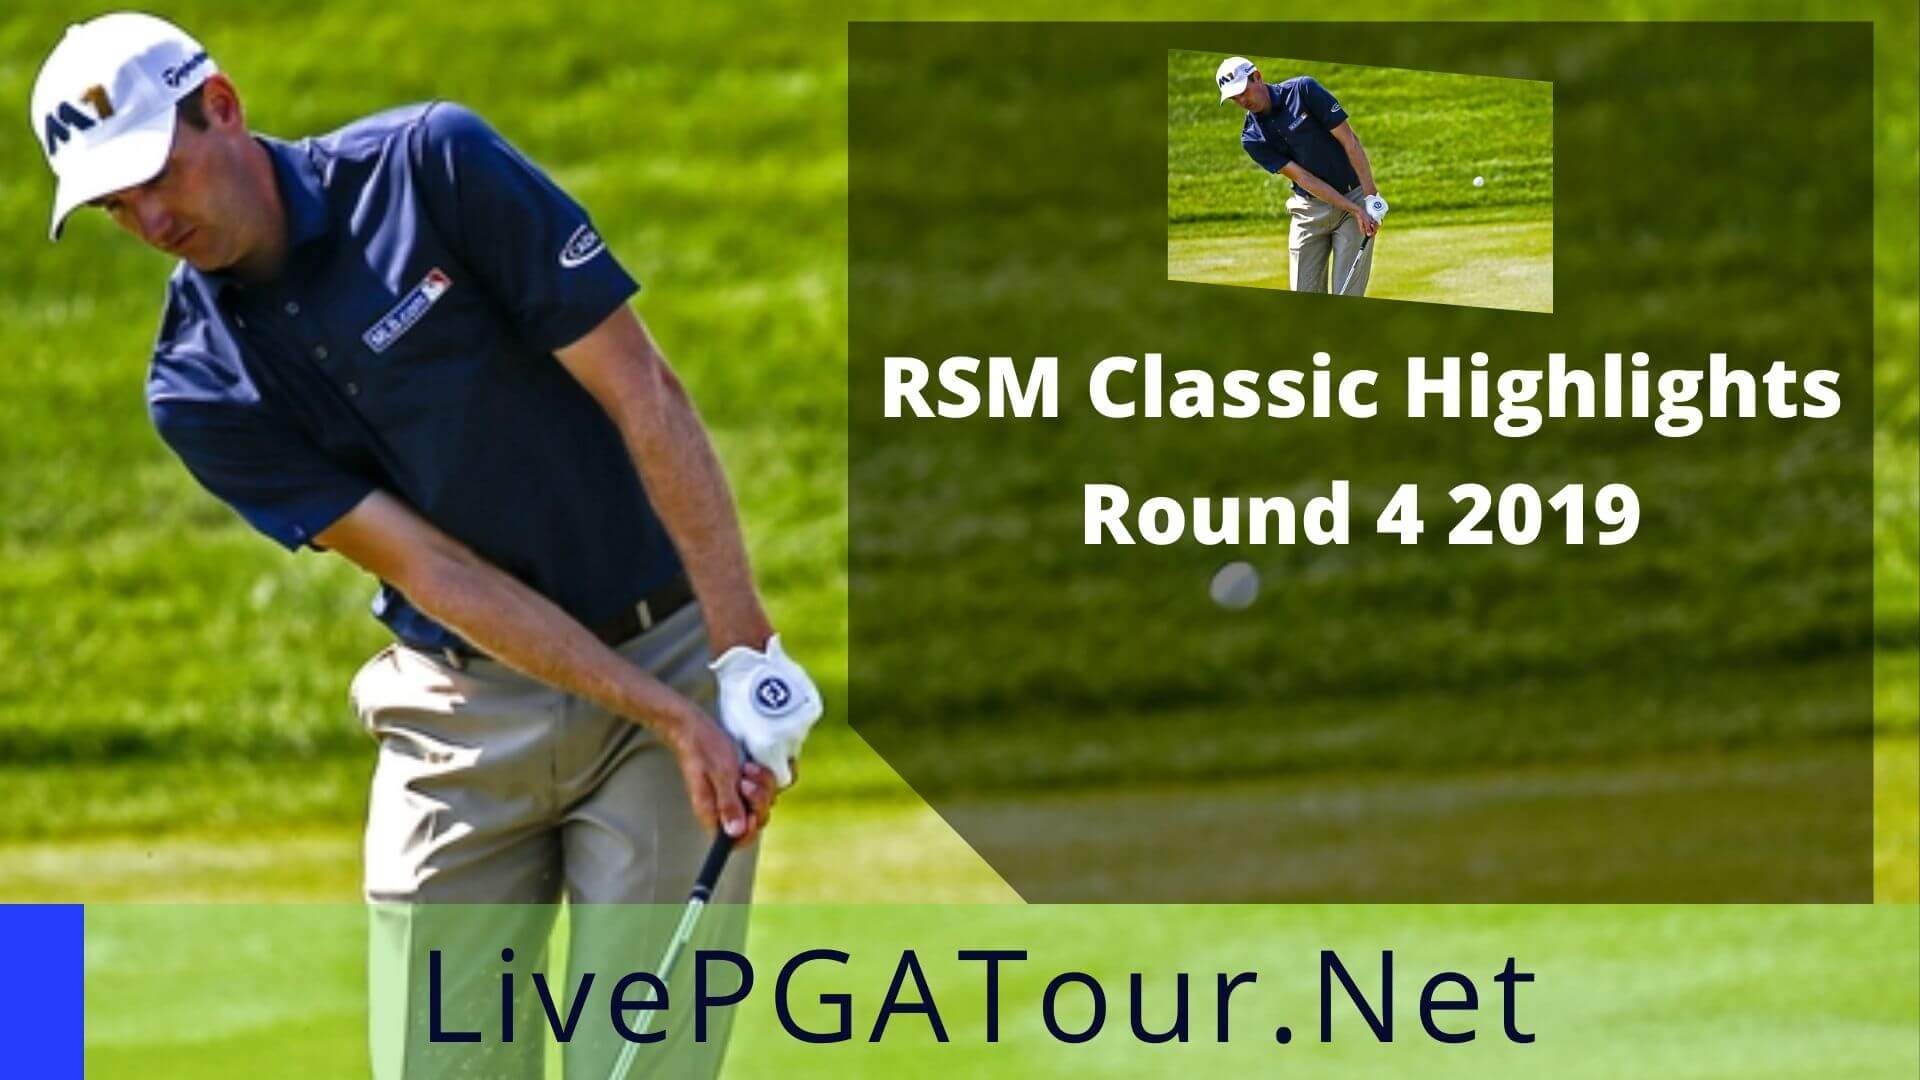 RSM Classic Highlights 2019 Round 4